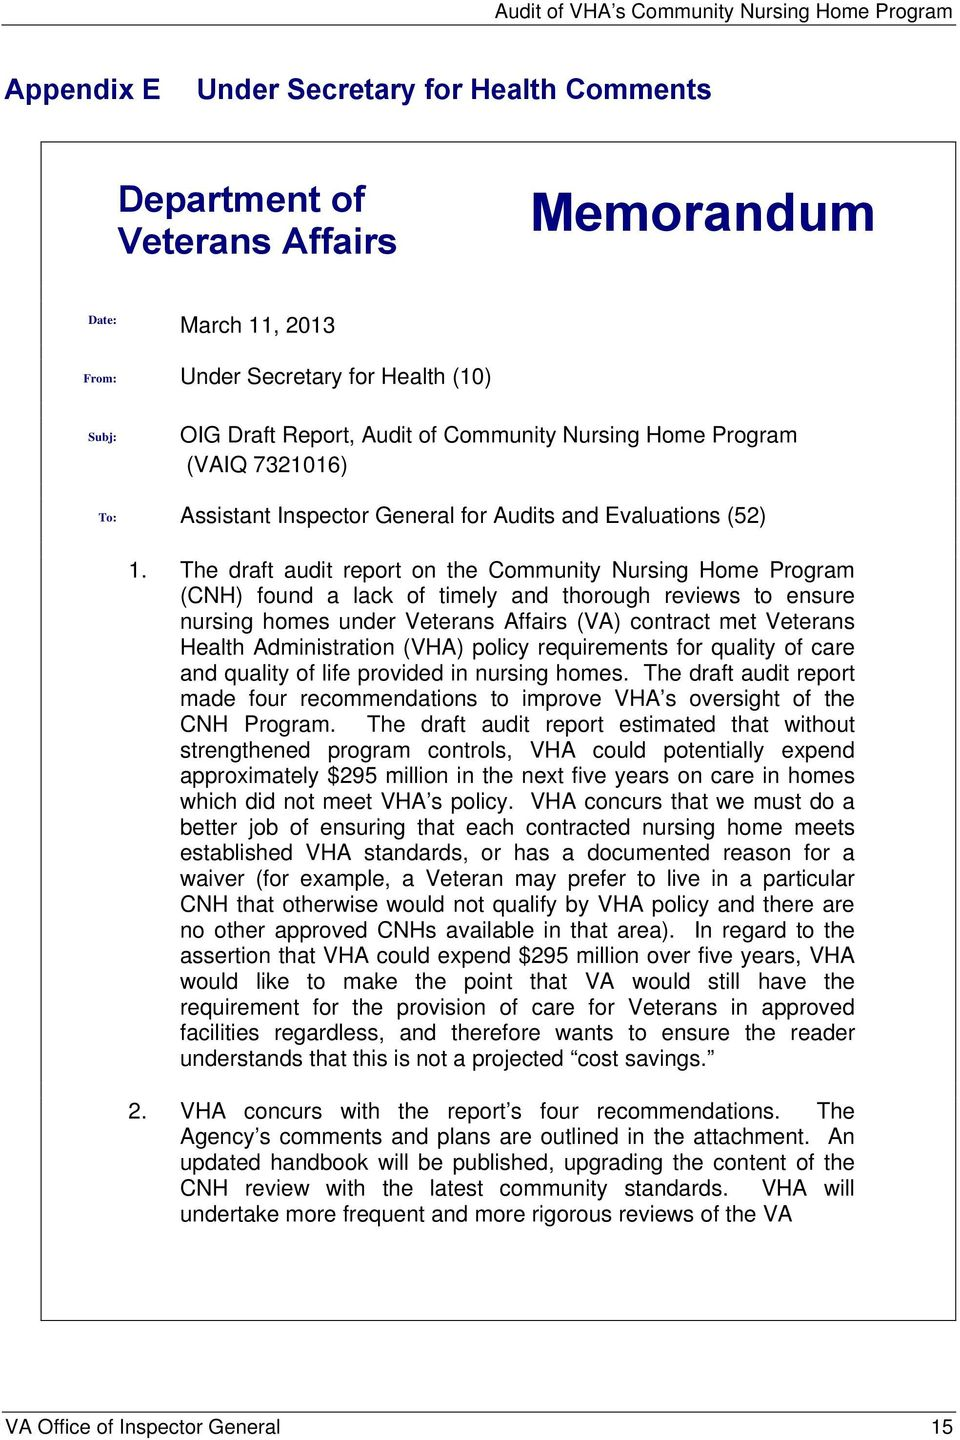 The draft audit report on the Community Nursing Home Program (CNH) found a lack of timely and thorough reviews to ensure nursing homes under Veterans Affairs (VA) contract met Veterans Health